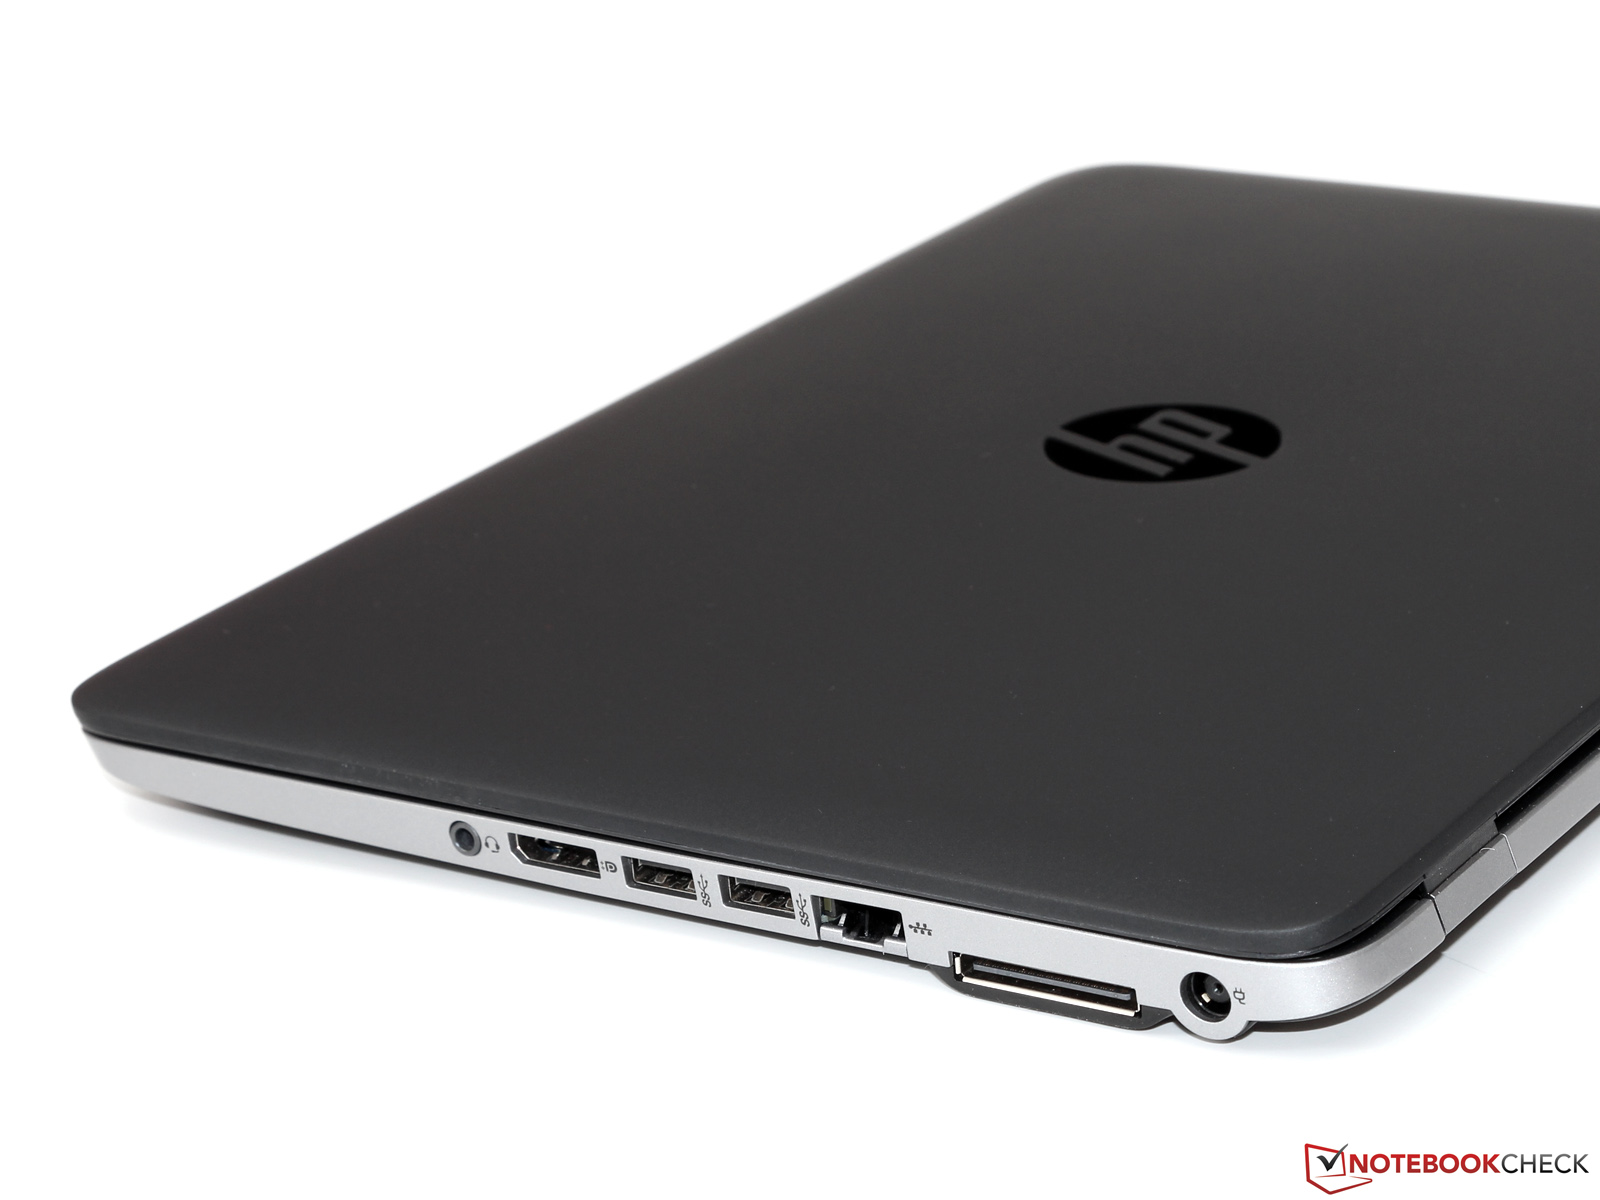 HP EliteBook 840 G2 Notebook Review - NotebookCheck net Reviews